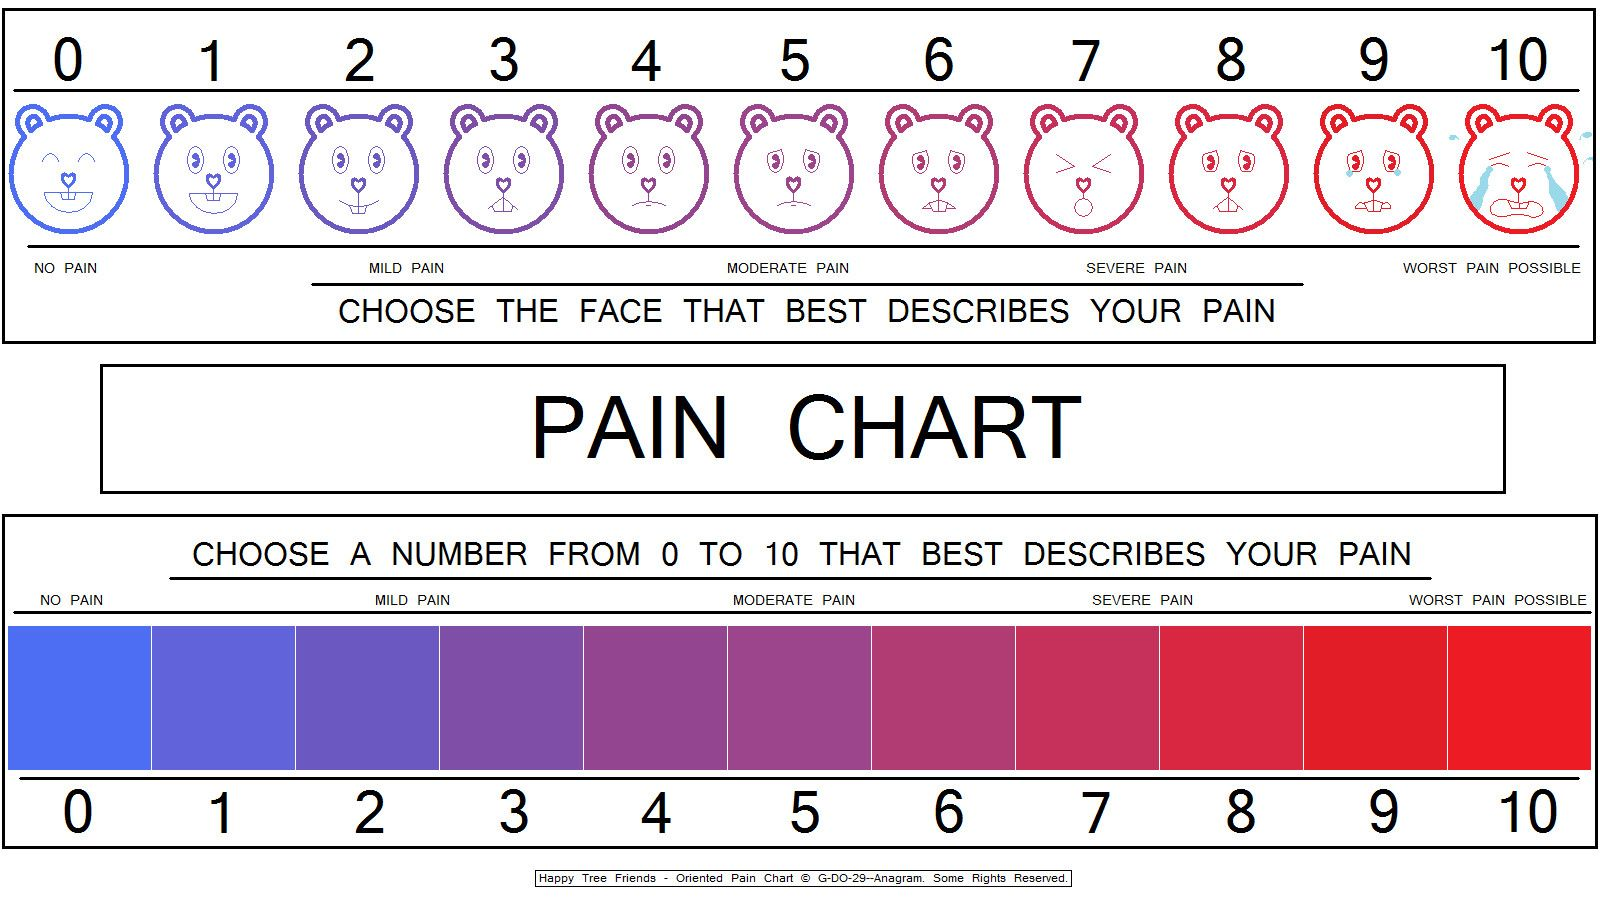 Pain chart - better than numbers   Ruminations   Pinterest   Do ...